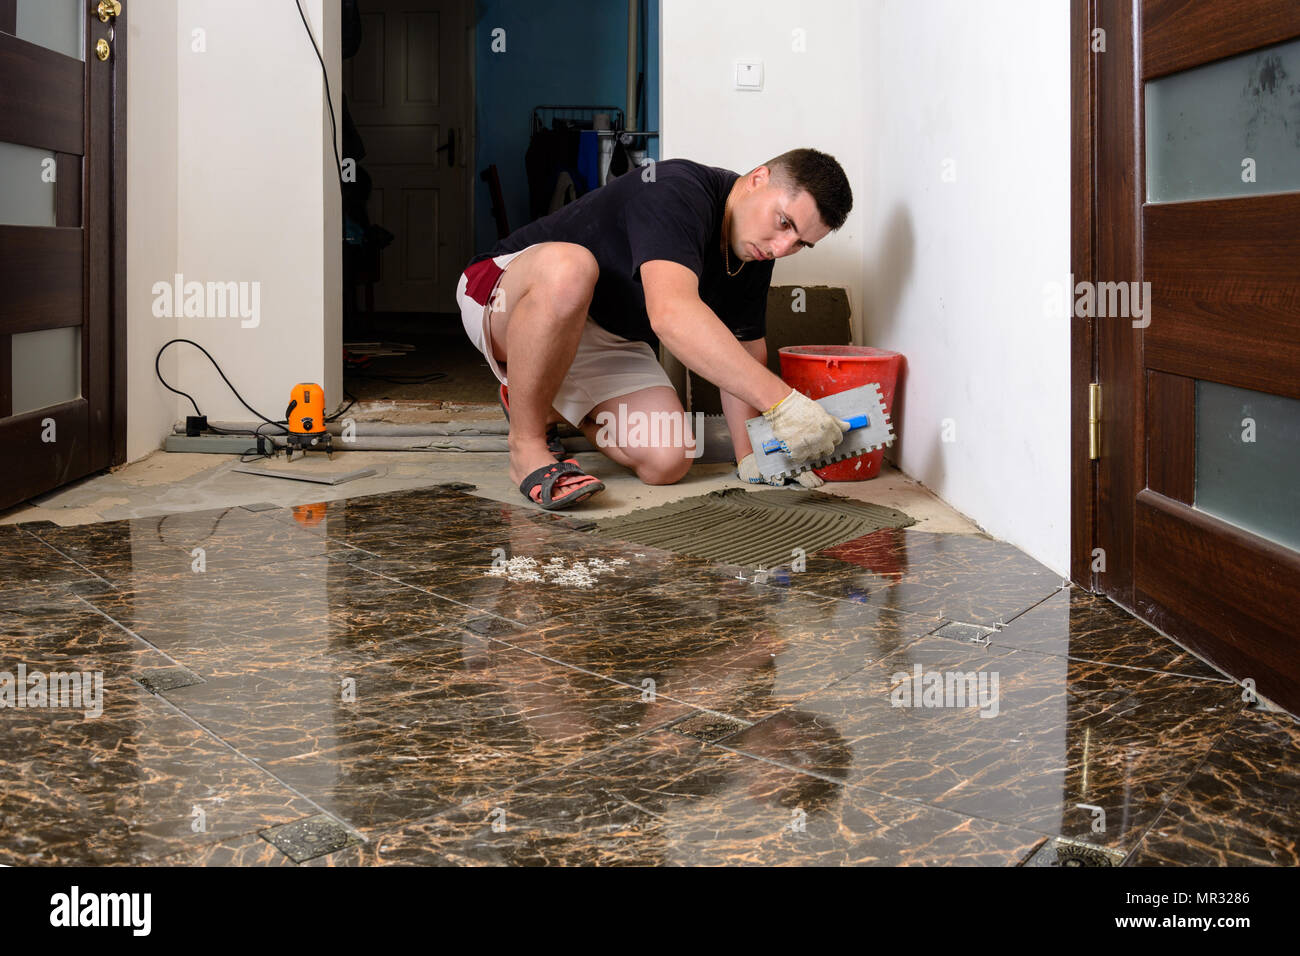 Laying Ceramic Tiles While Repairing In Room And Applying Glue To